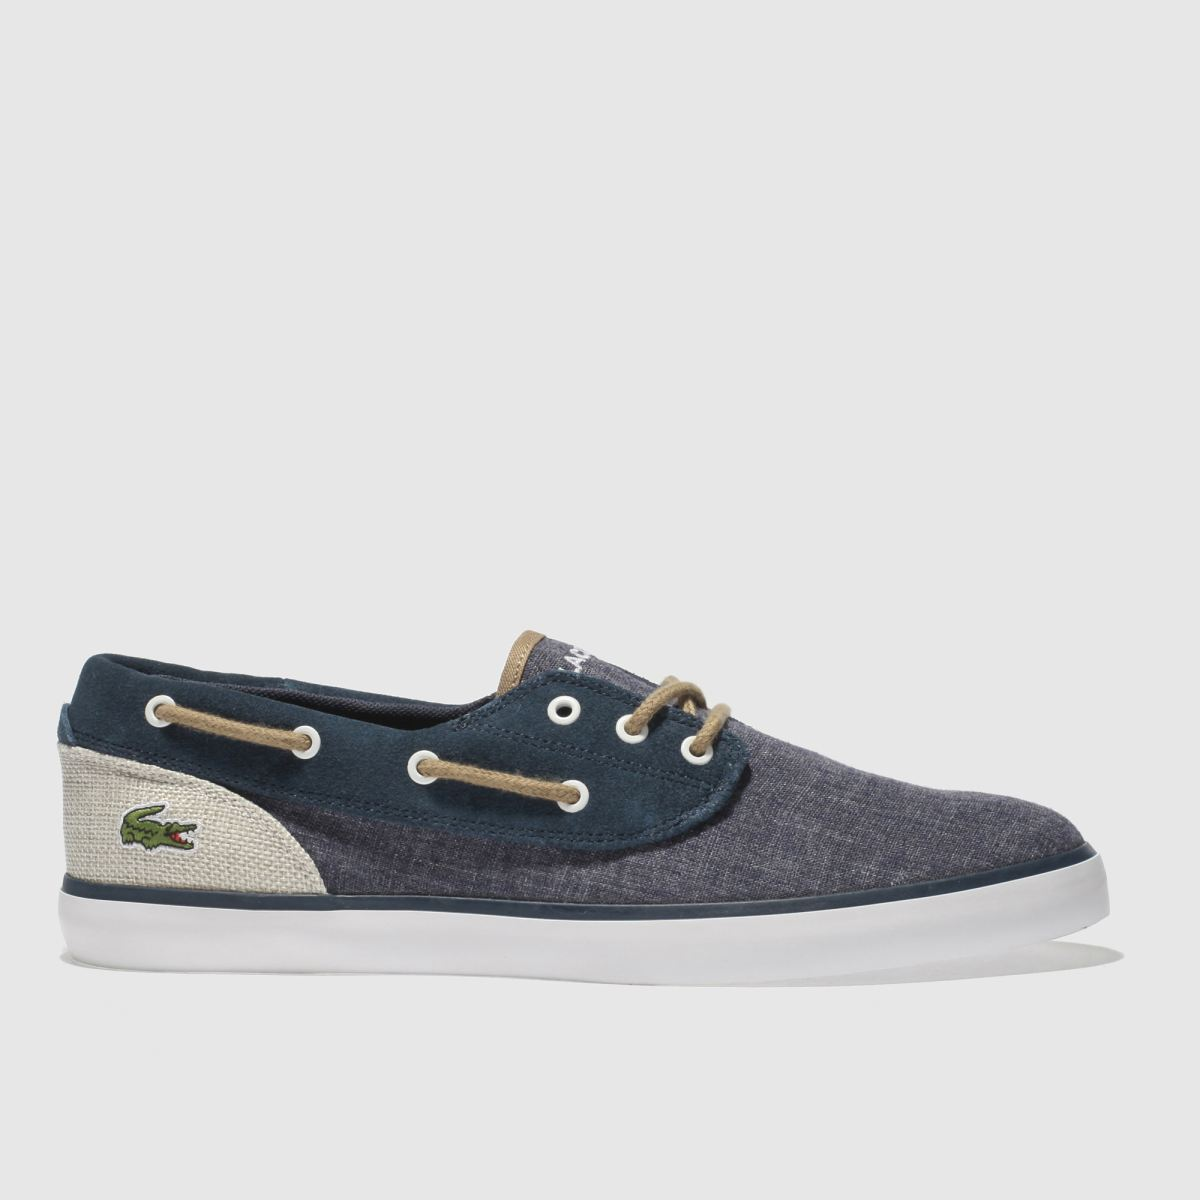 Lacoste Navy & Stone Jouer Deck Trainers